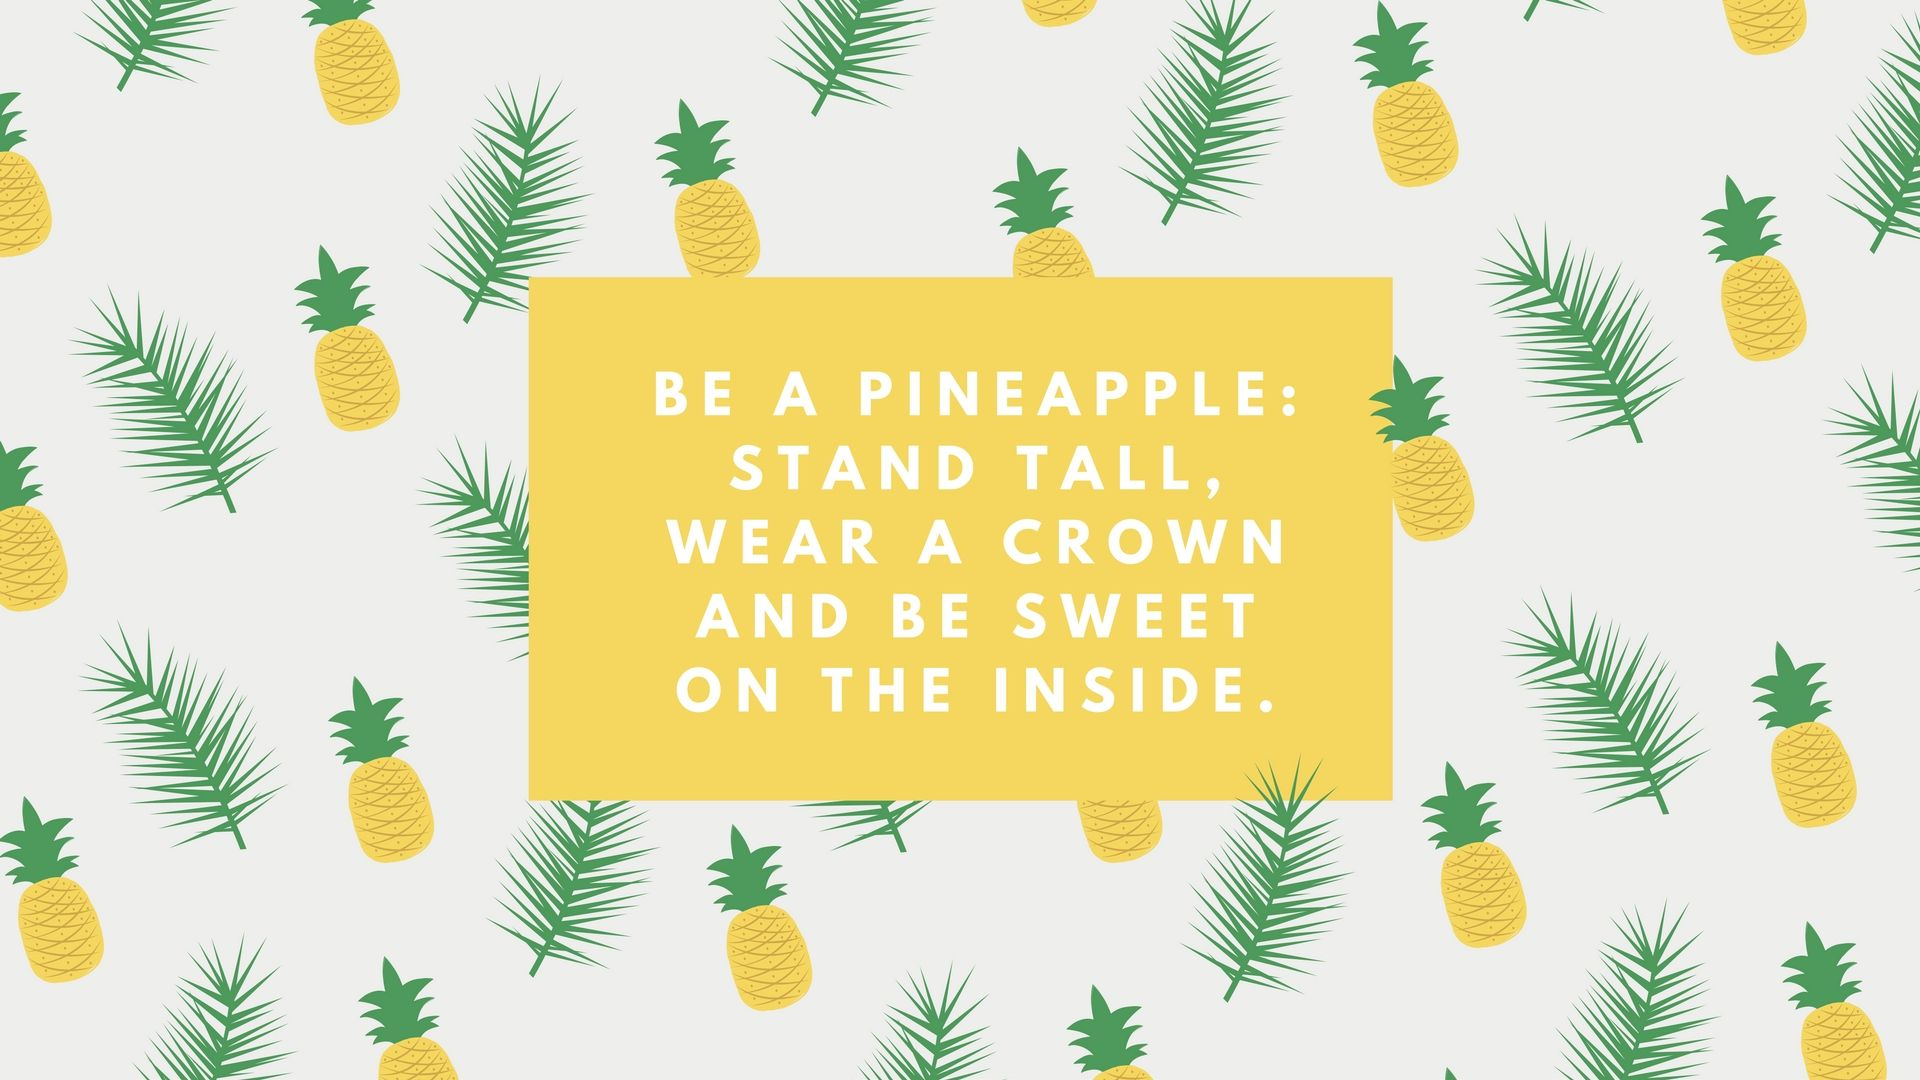 Most Inspiring Wallpaper Macbook Pineapple - 55b4ccd793c717d0765ae216d74cfd4e  You Should Have_419387.jpg